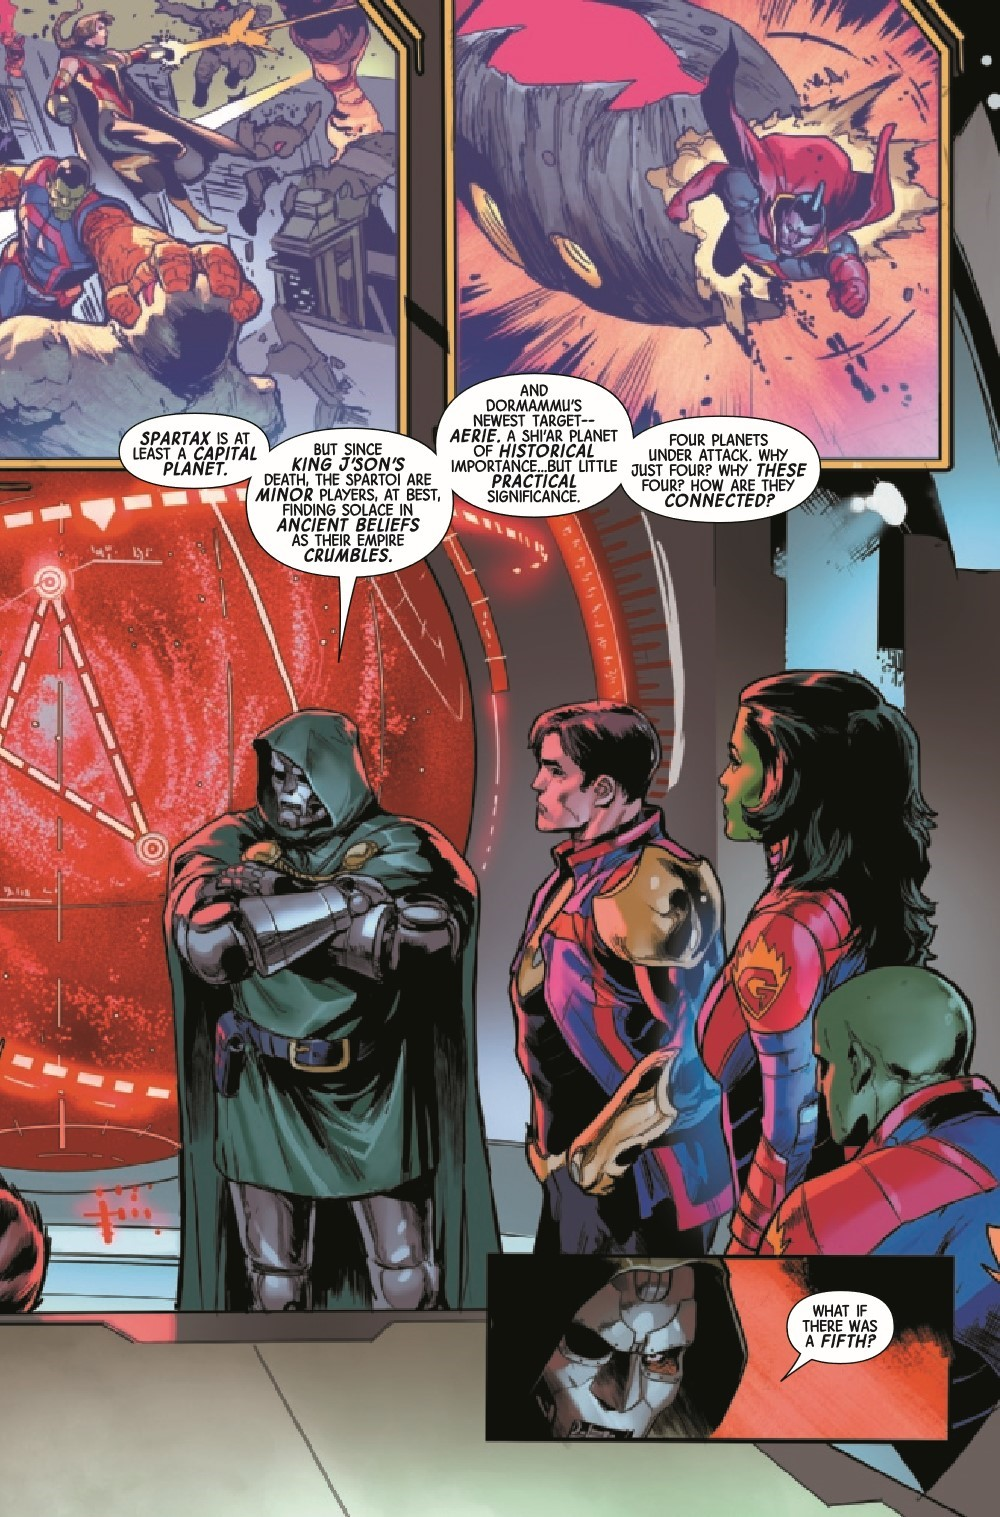 GARGAL2020017_Preview-5 ComicList Previews: GUARDIANS OF THE GALAXY #17